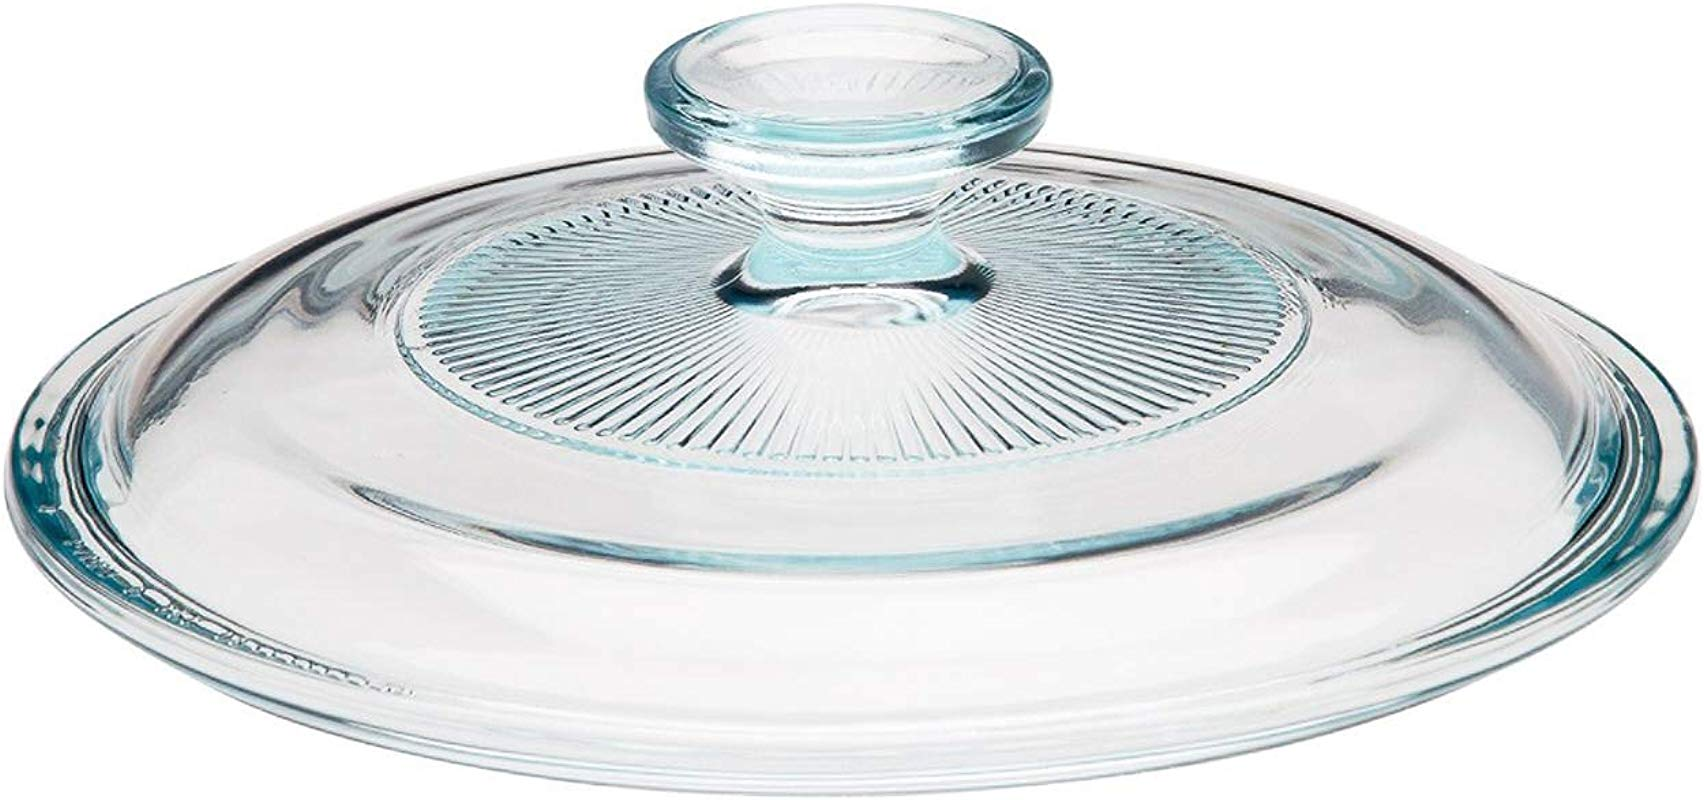 Corning Ware Pyrex Clear Round Glass Lid Ribbed 7 1 4 Dia G 5 C A